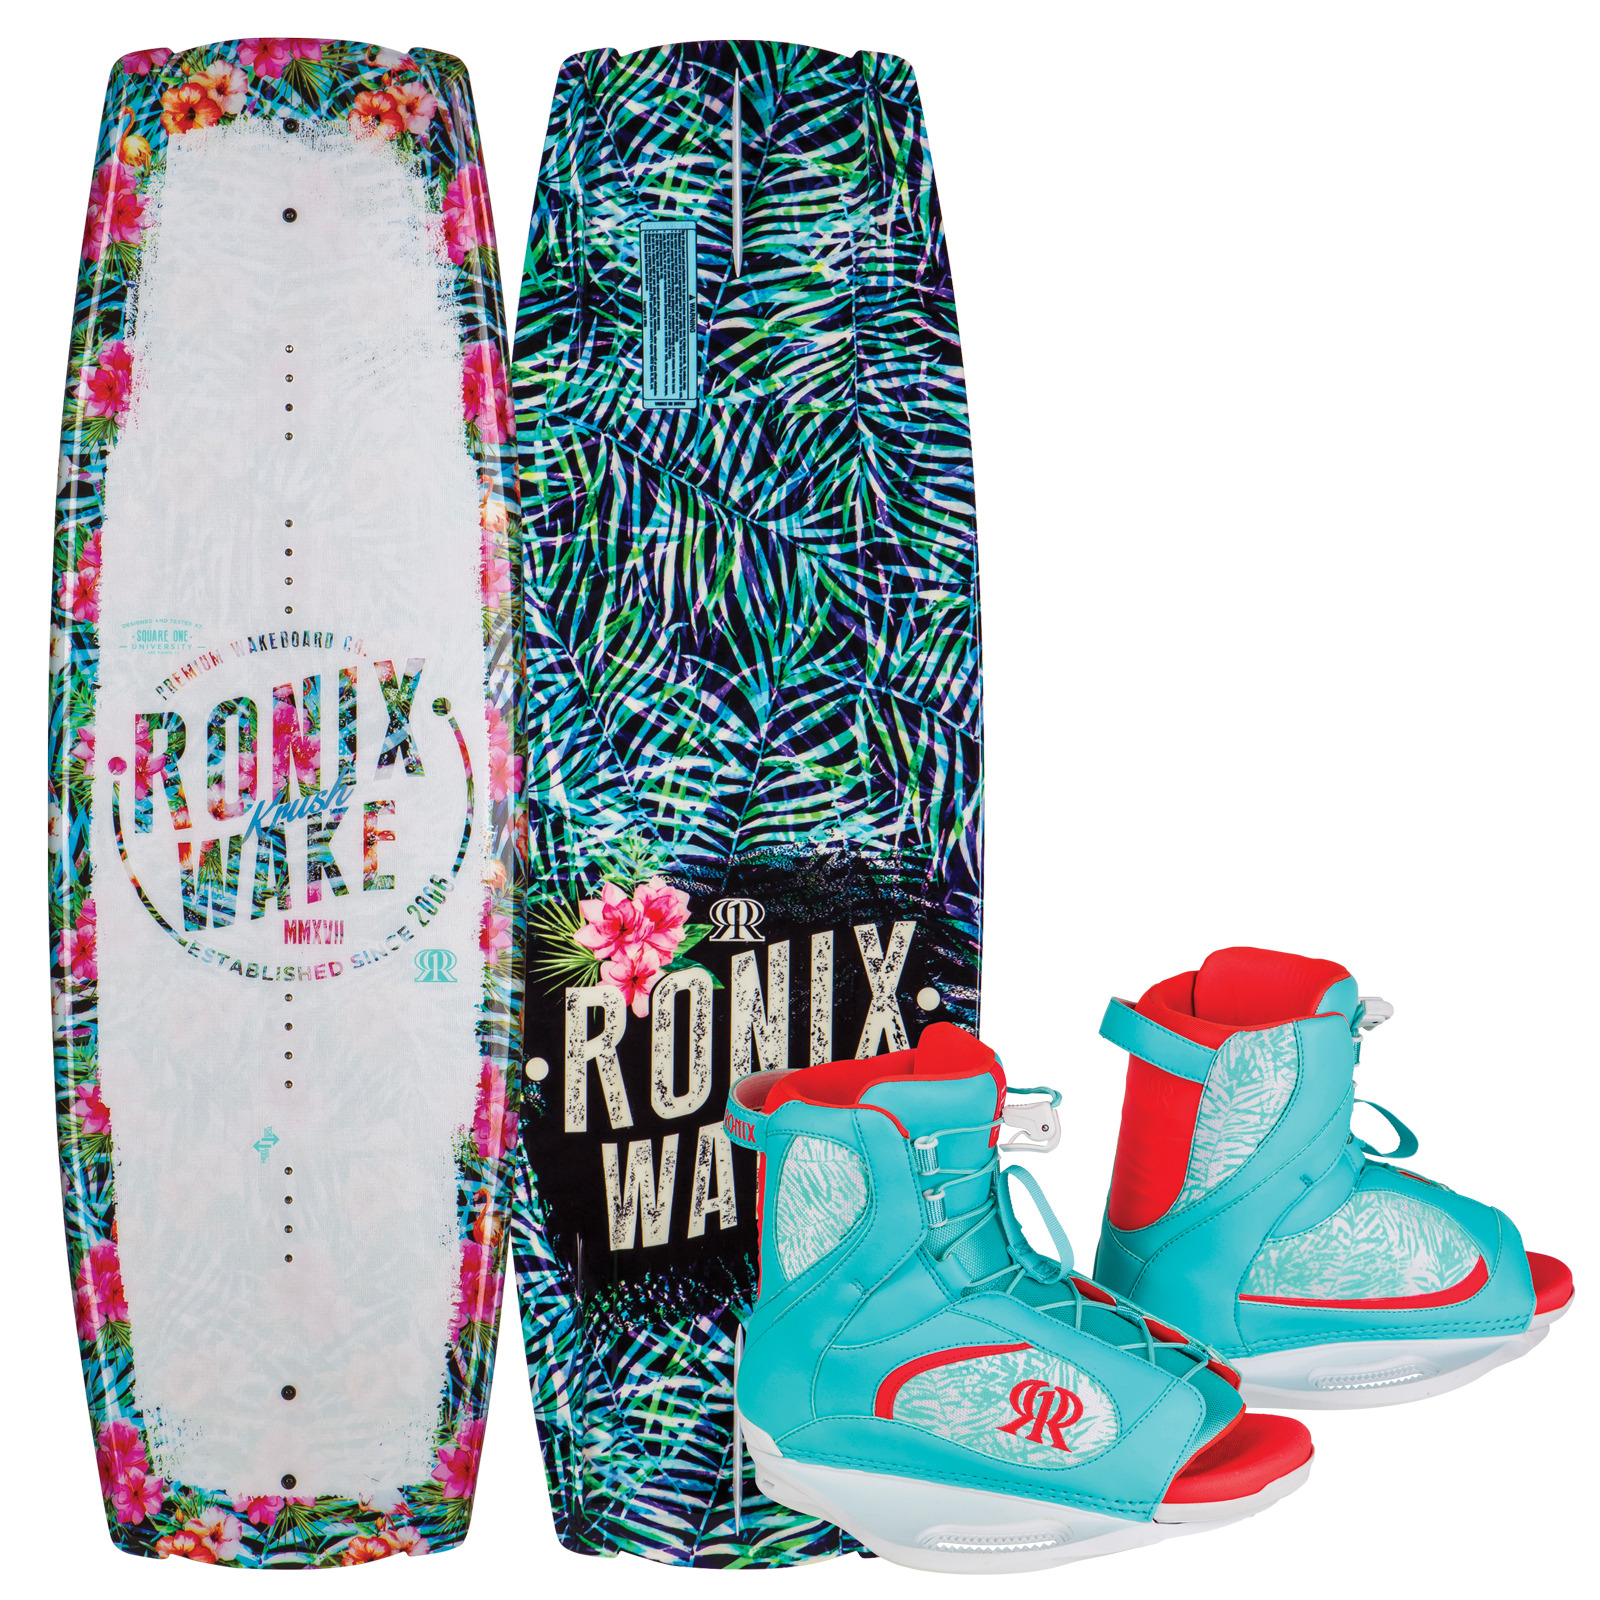 KRUSH 134 W/ LUXE PACKAGE RONIX 2017